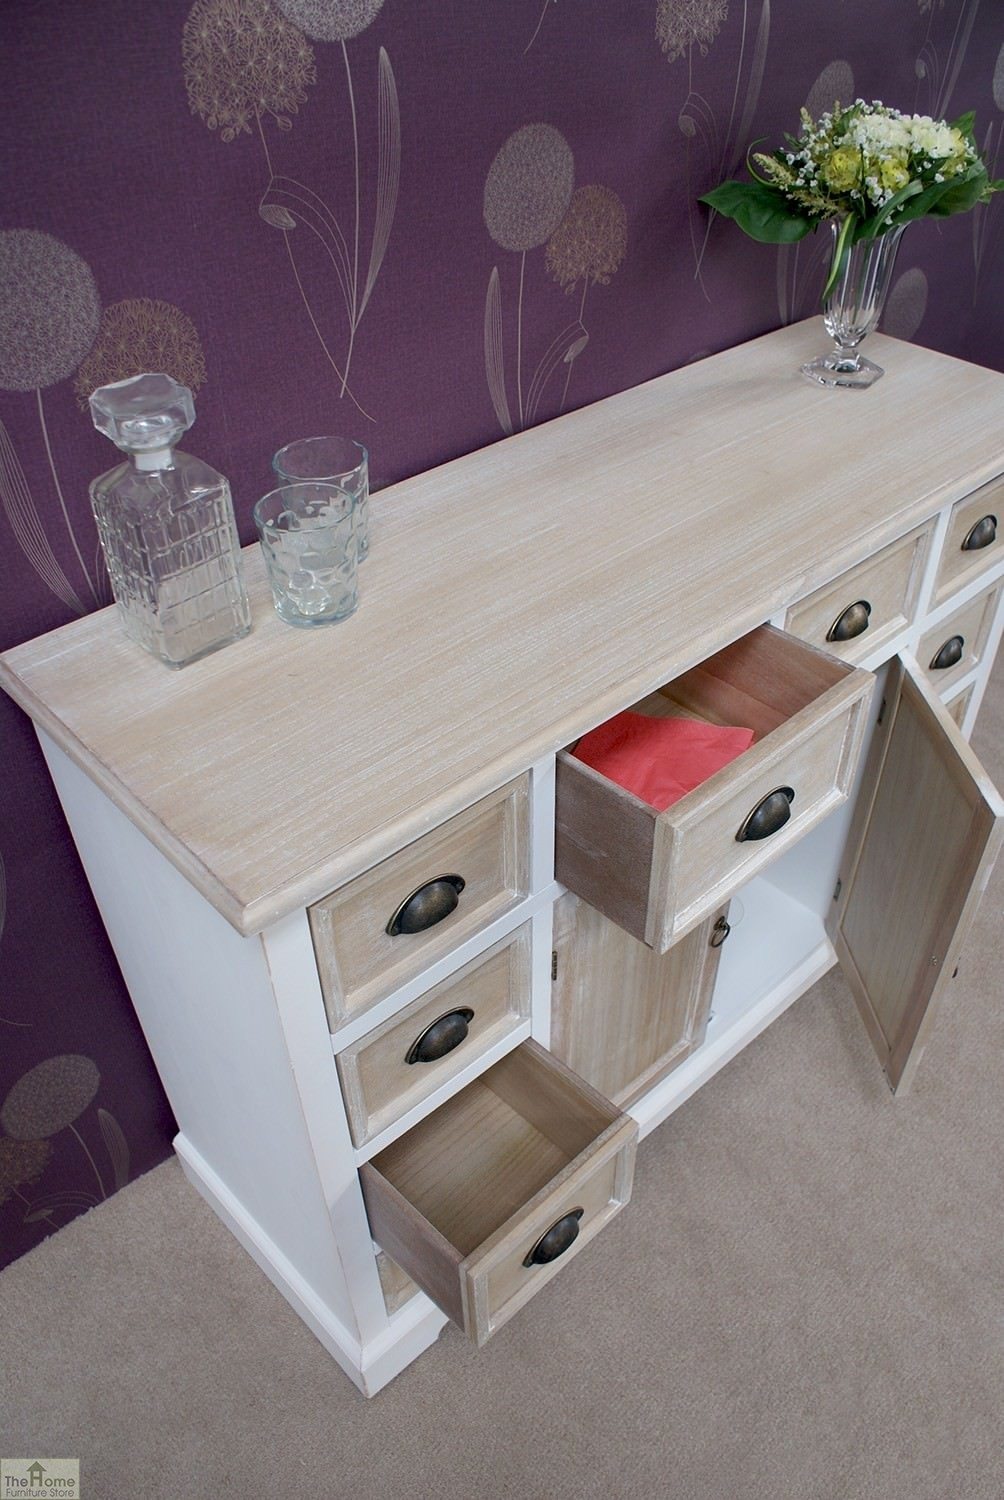 Cotswold 10 drawer 2 door sideboard the home furniture store Home furniture outlet uk